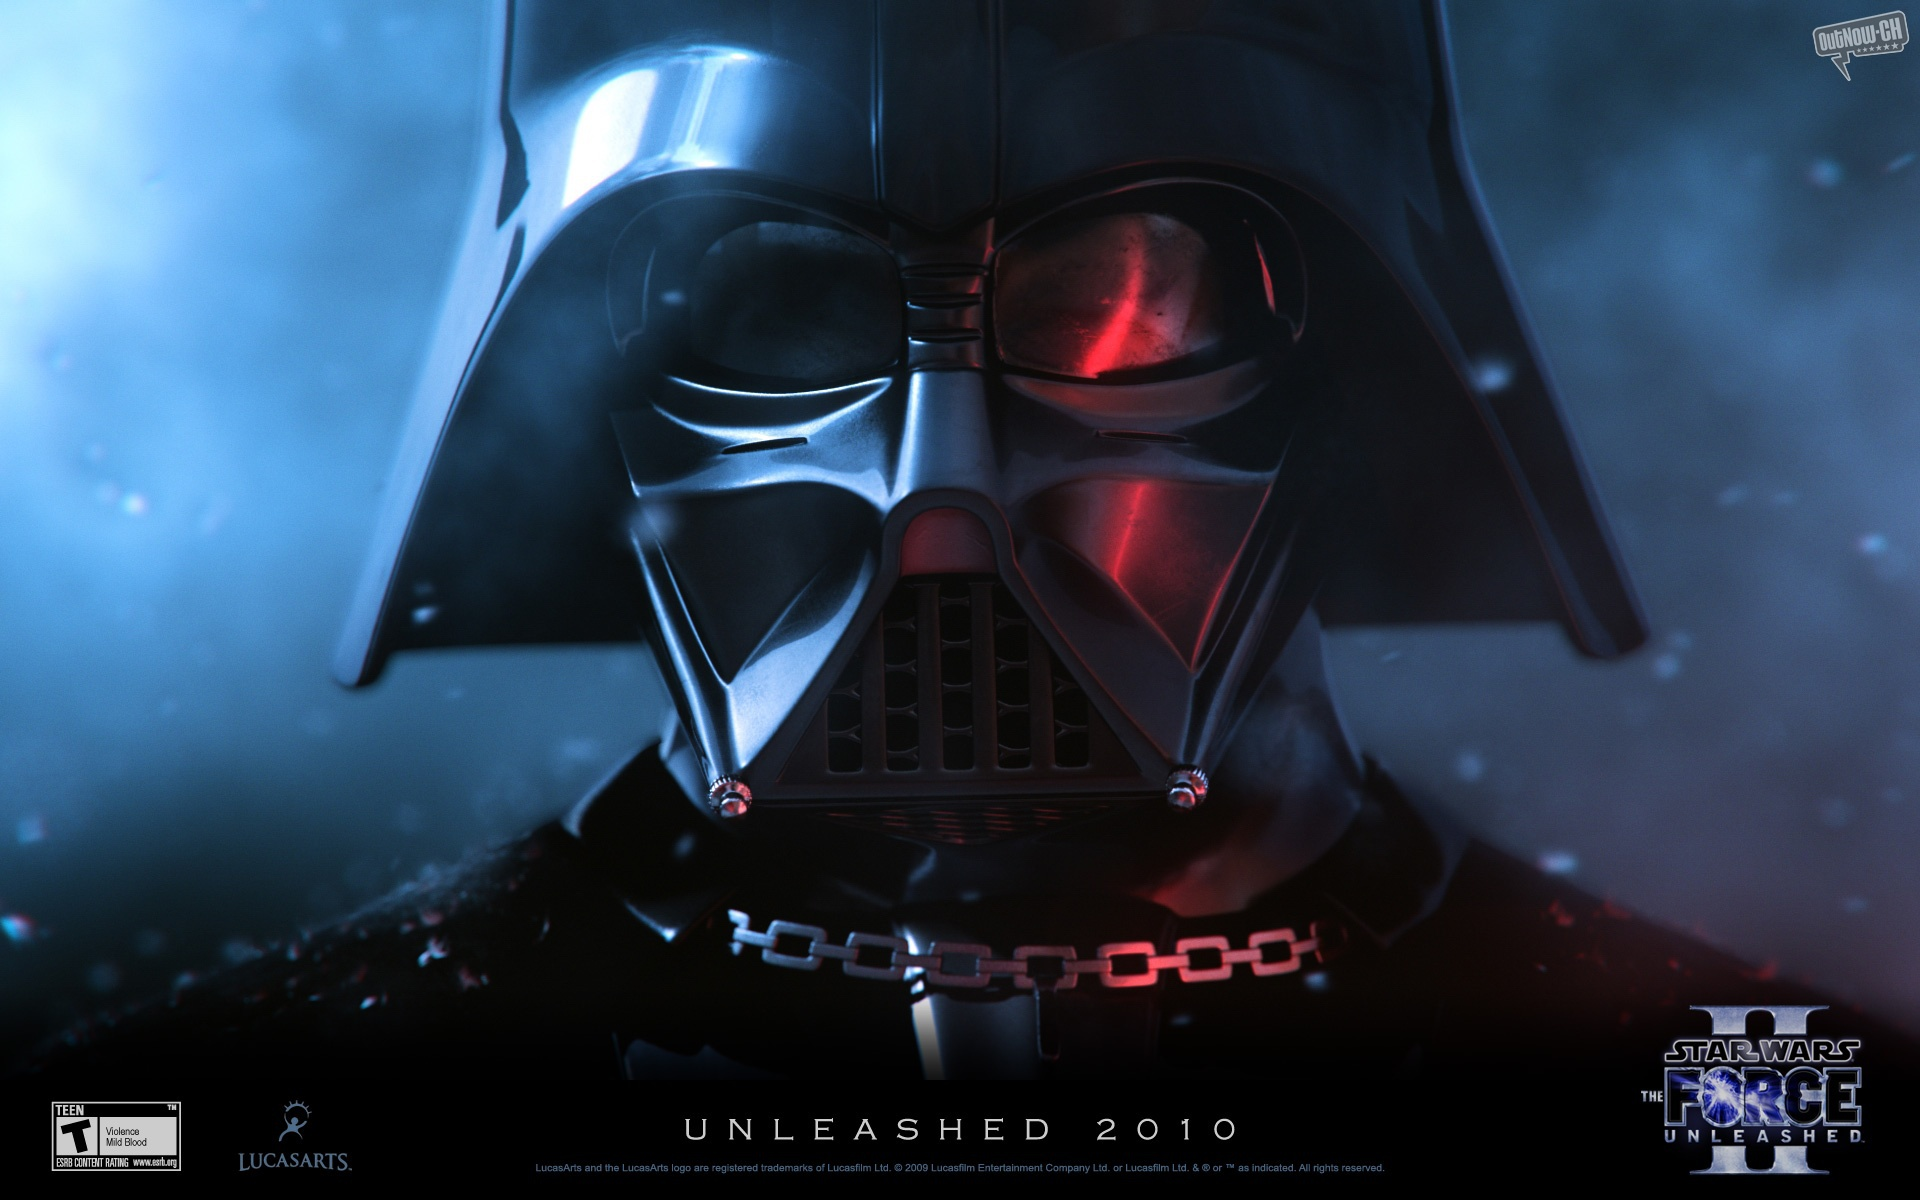 star wars: force unleashed 2 wallpapers | star wars: force unleashed